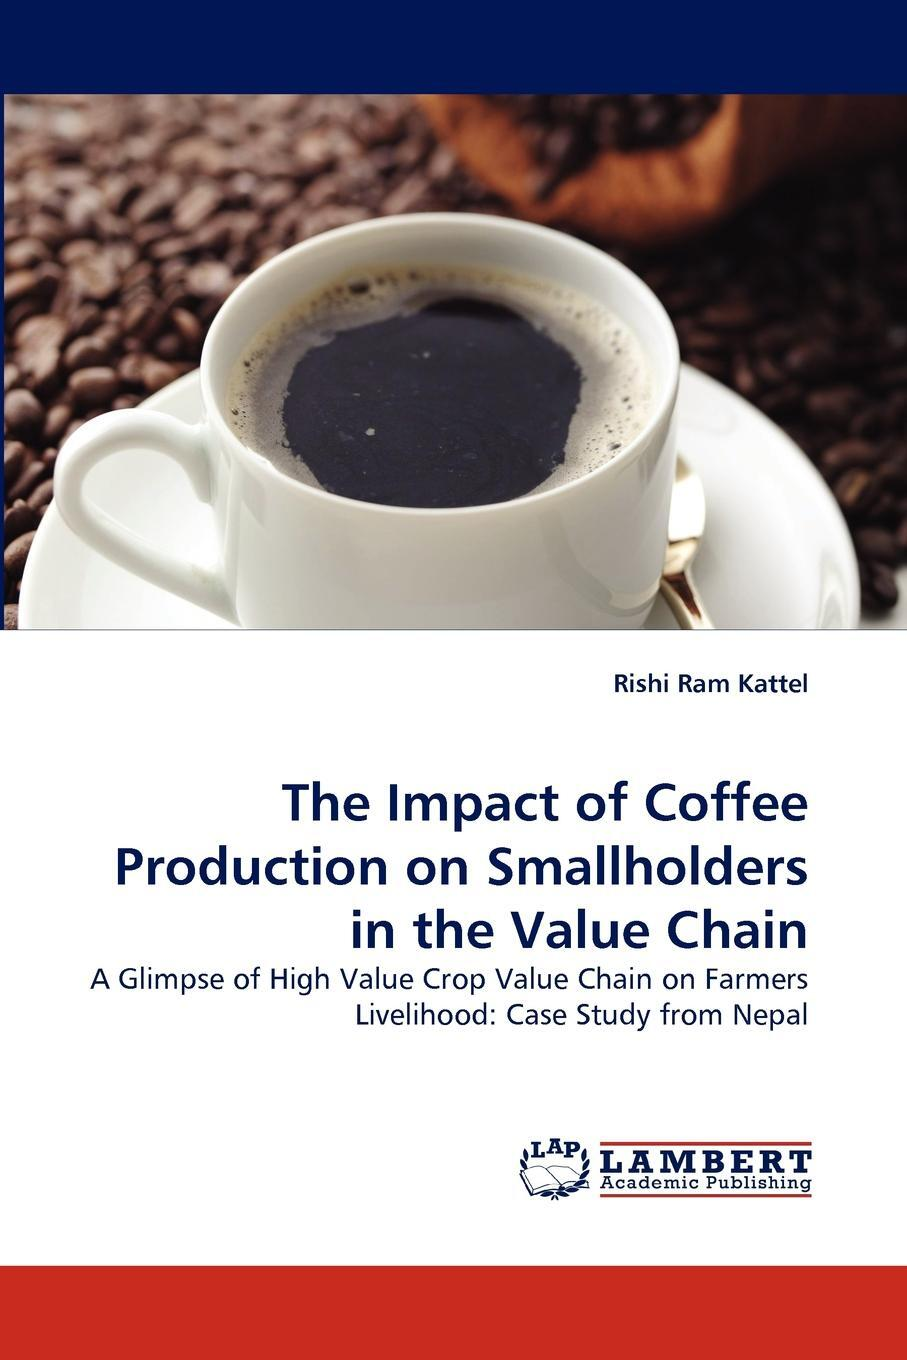 The Impact of Coffee Production on Smallholders in the Value Chain